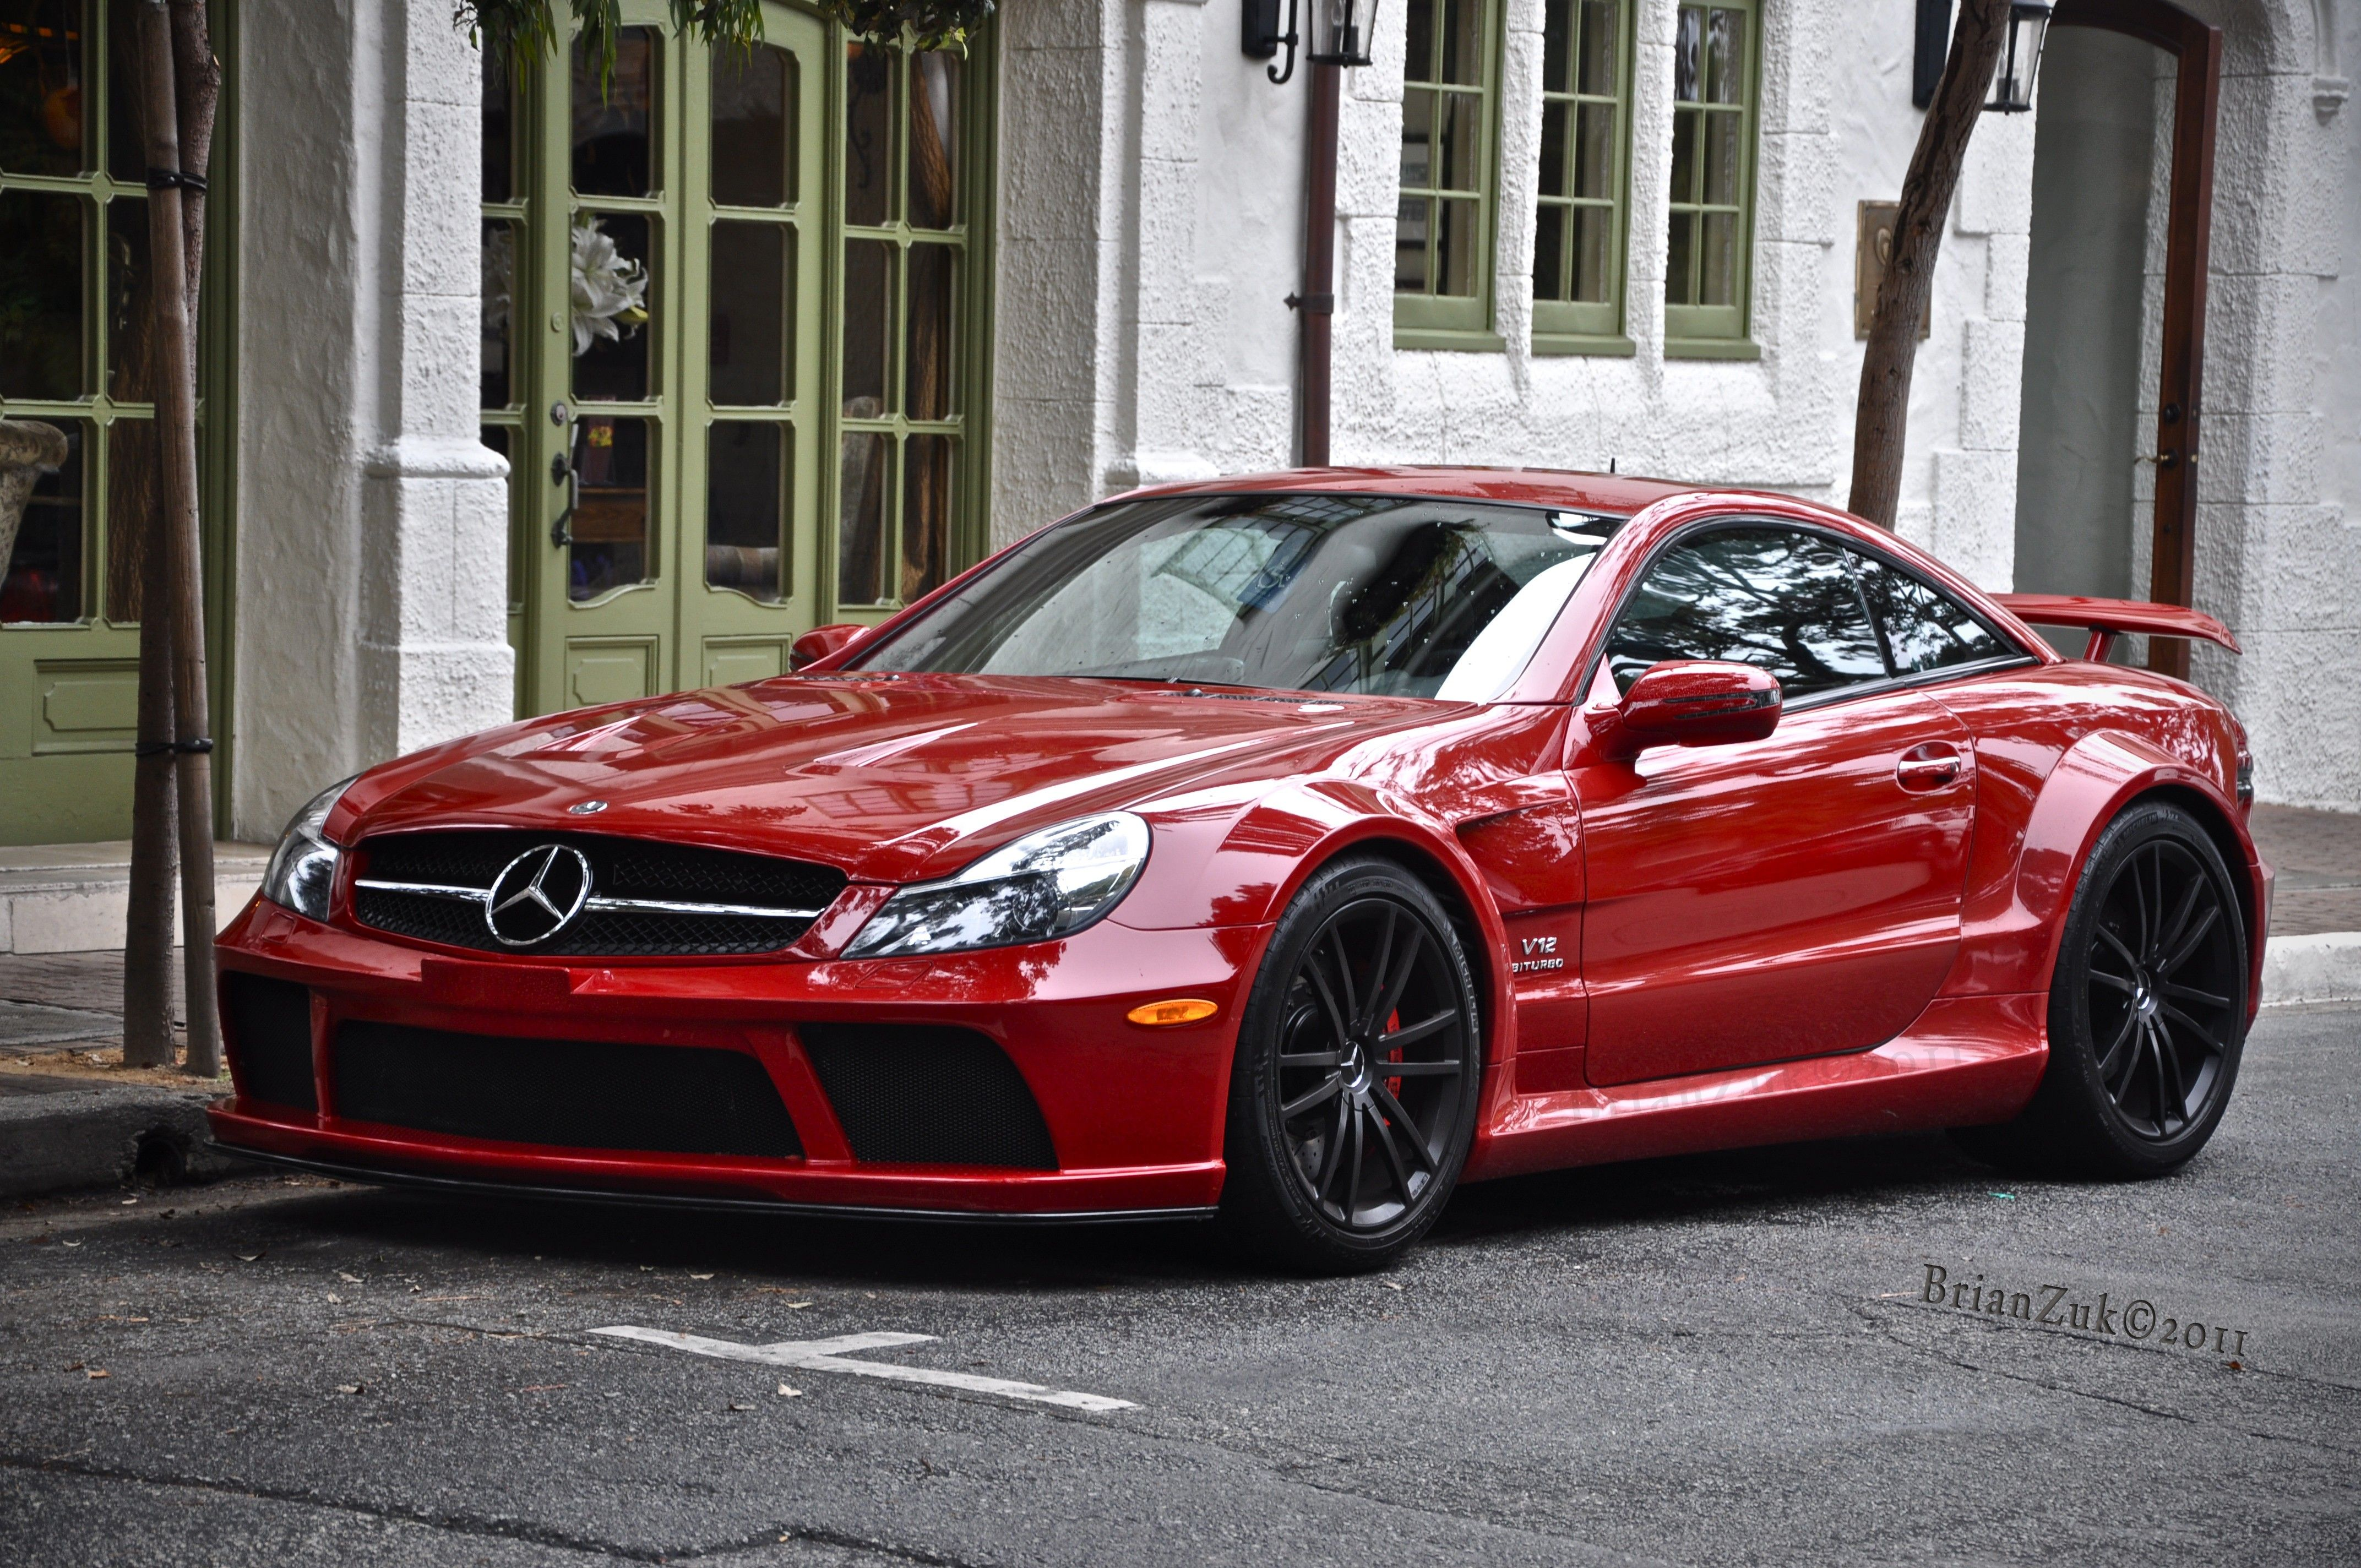 BrianZuk spots an absolutely stunning RED Mercedes SL65 AMG Black ...